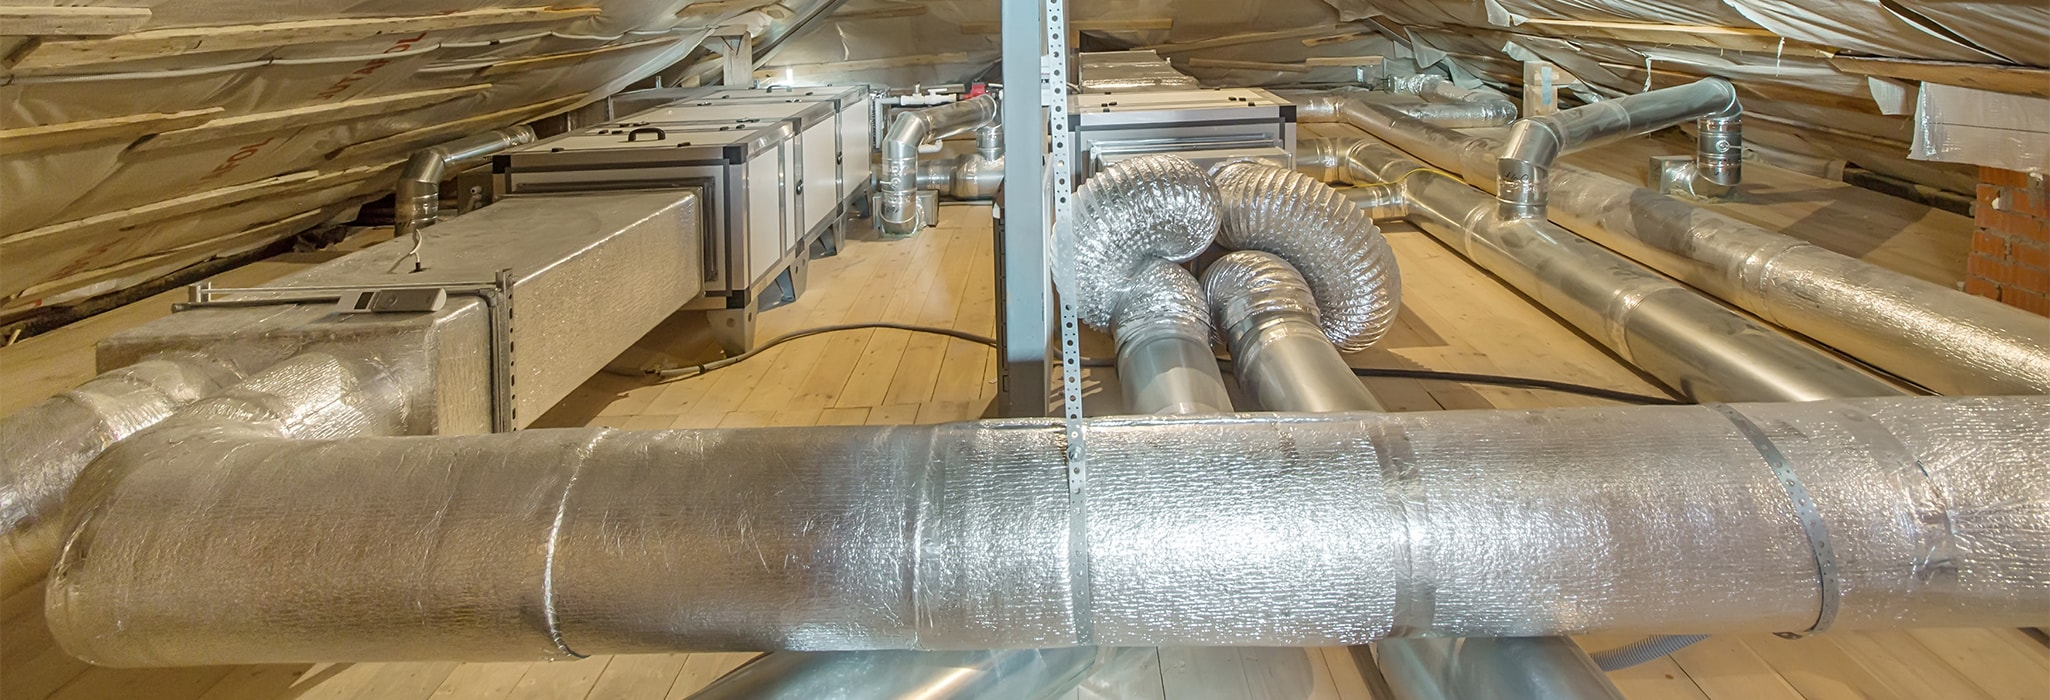 Air duct service.